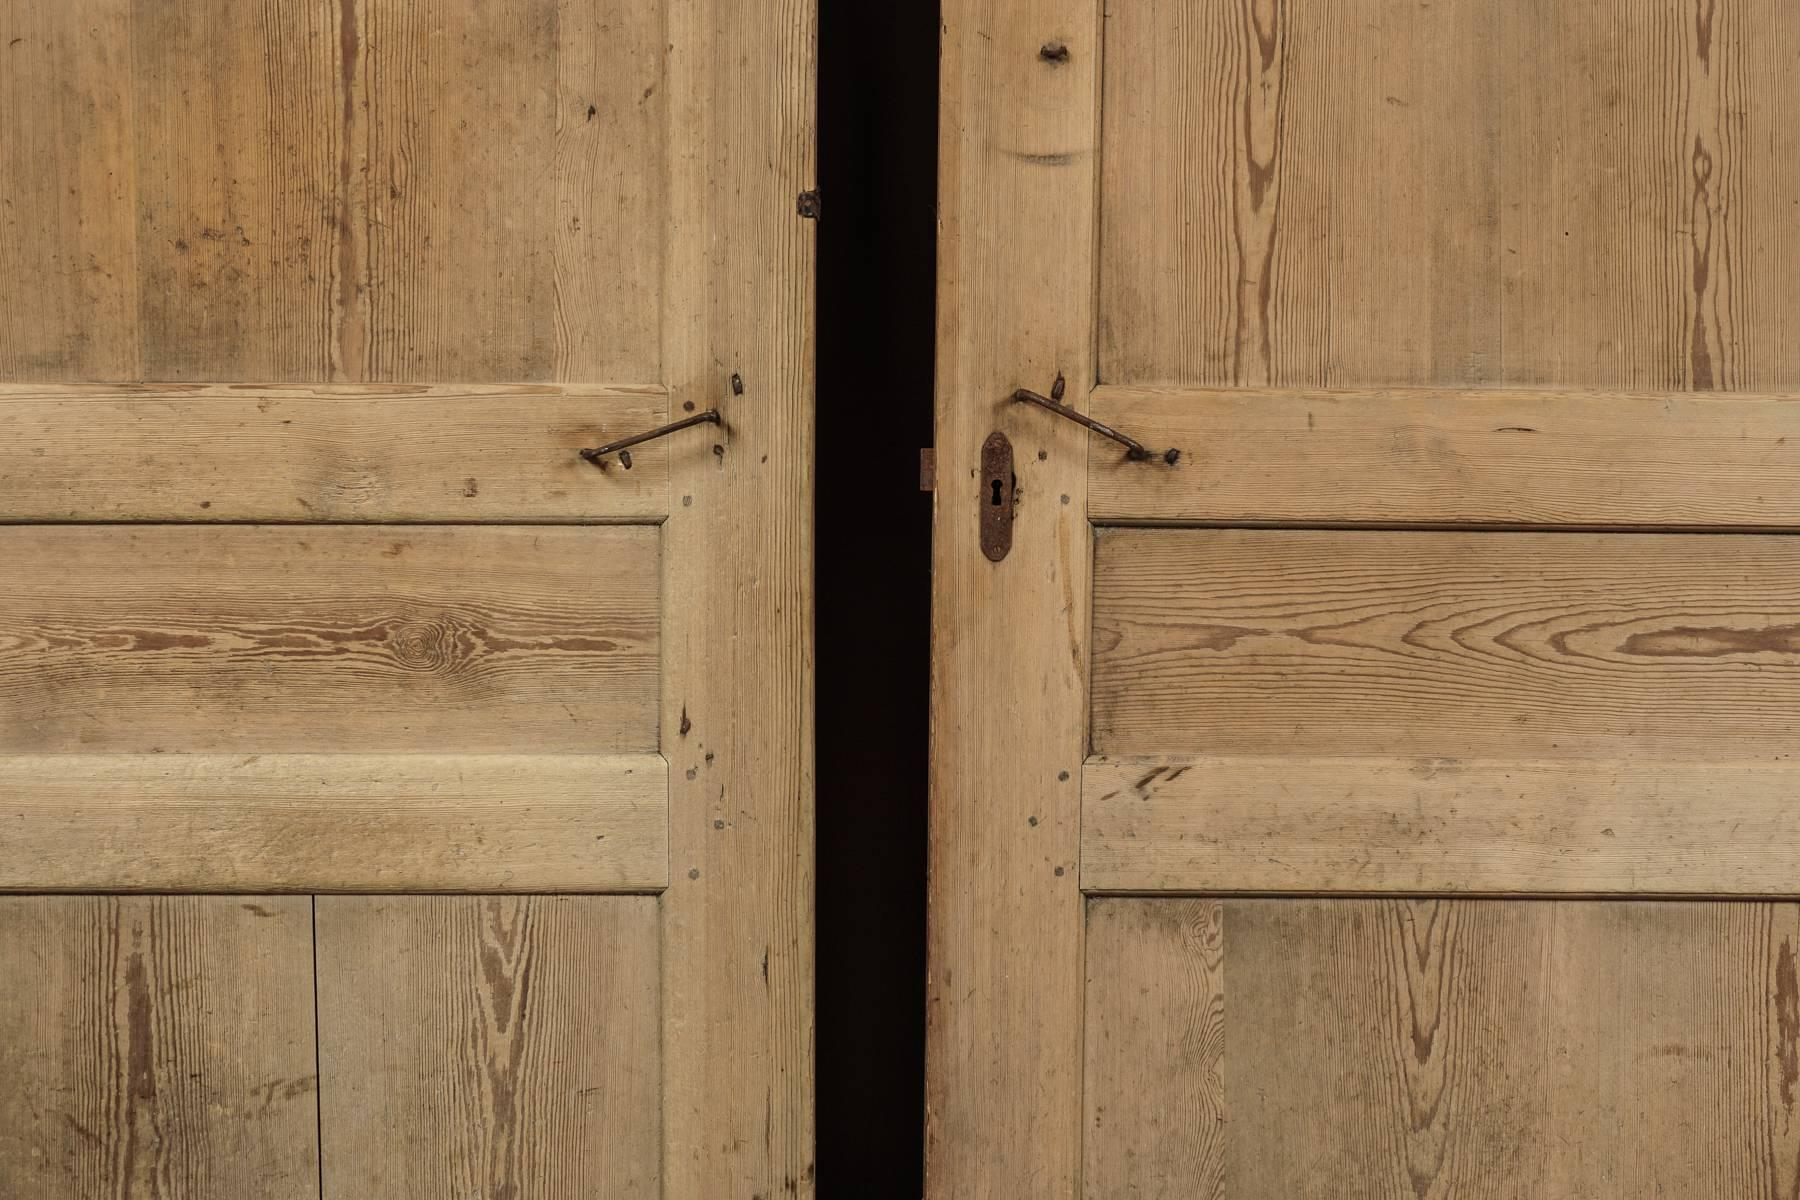 Pair of Primitive Doors from Sweden circa 1820 In Good Condition For Sale In Nashville & Pair of Primitive Doors from Sweden circa 1820 at 1stdibs